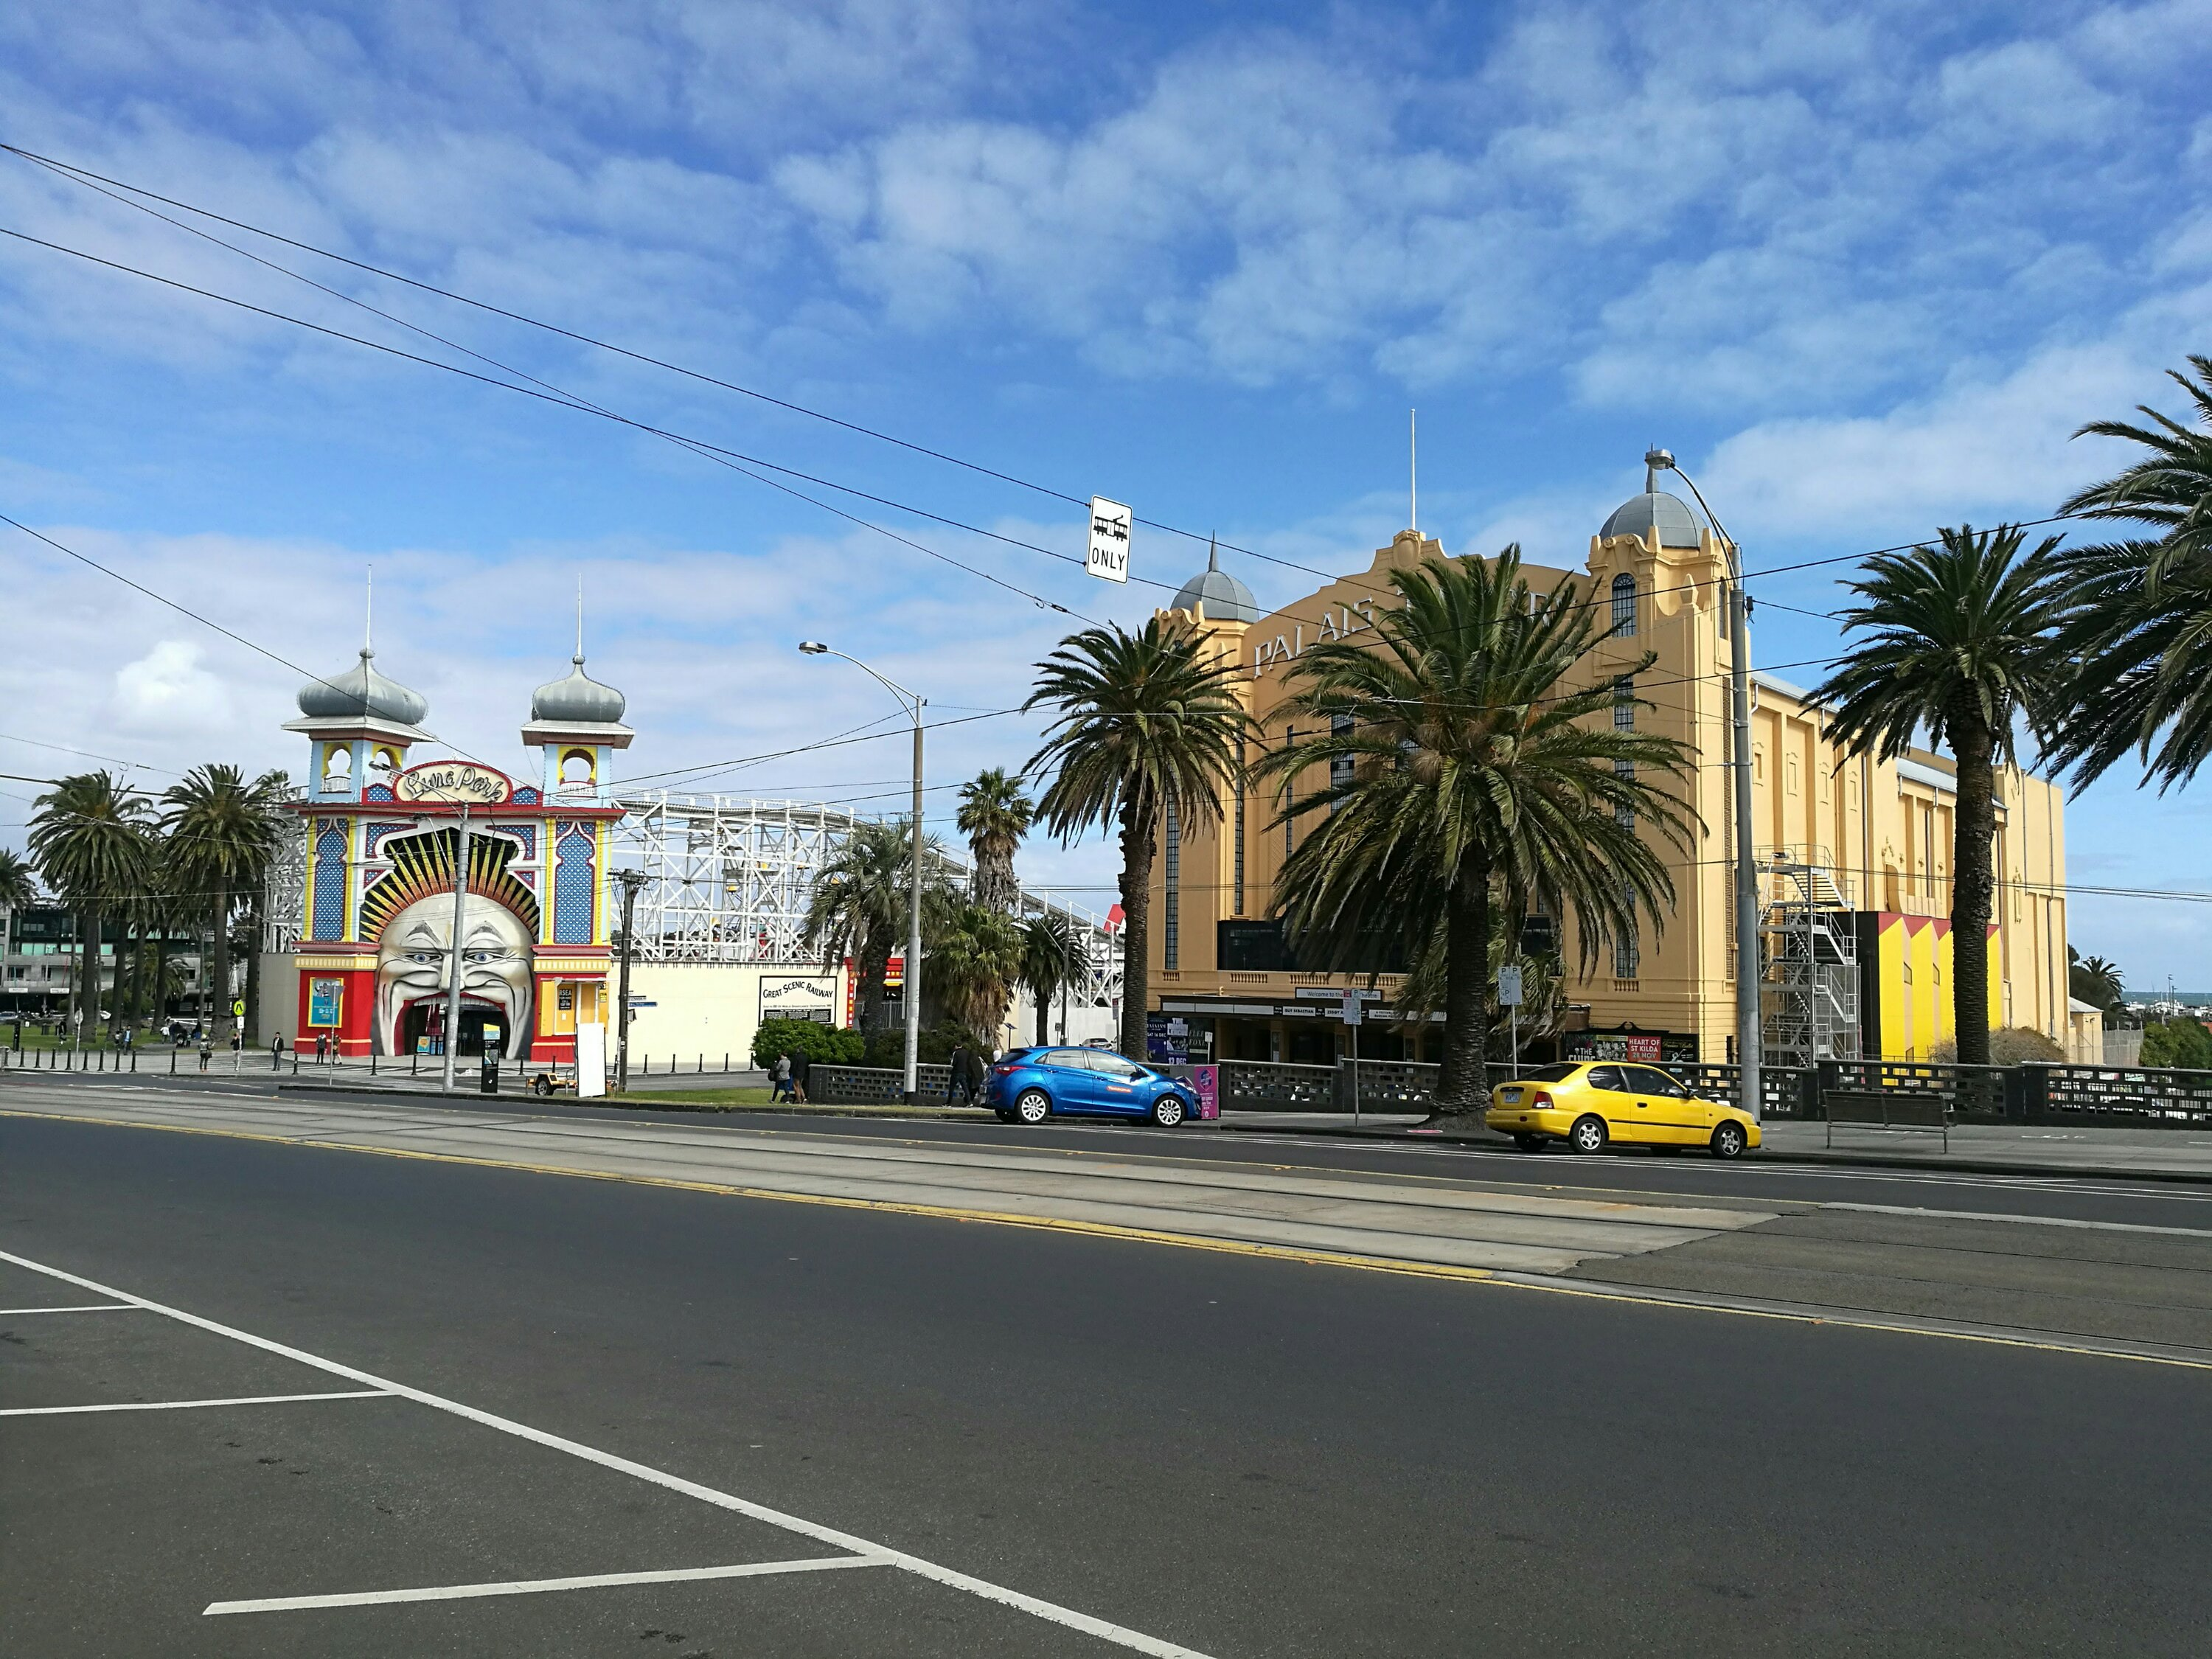 St Kilda Luna Park and the Palais Theatre